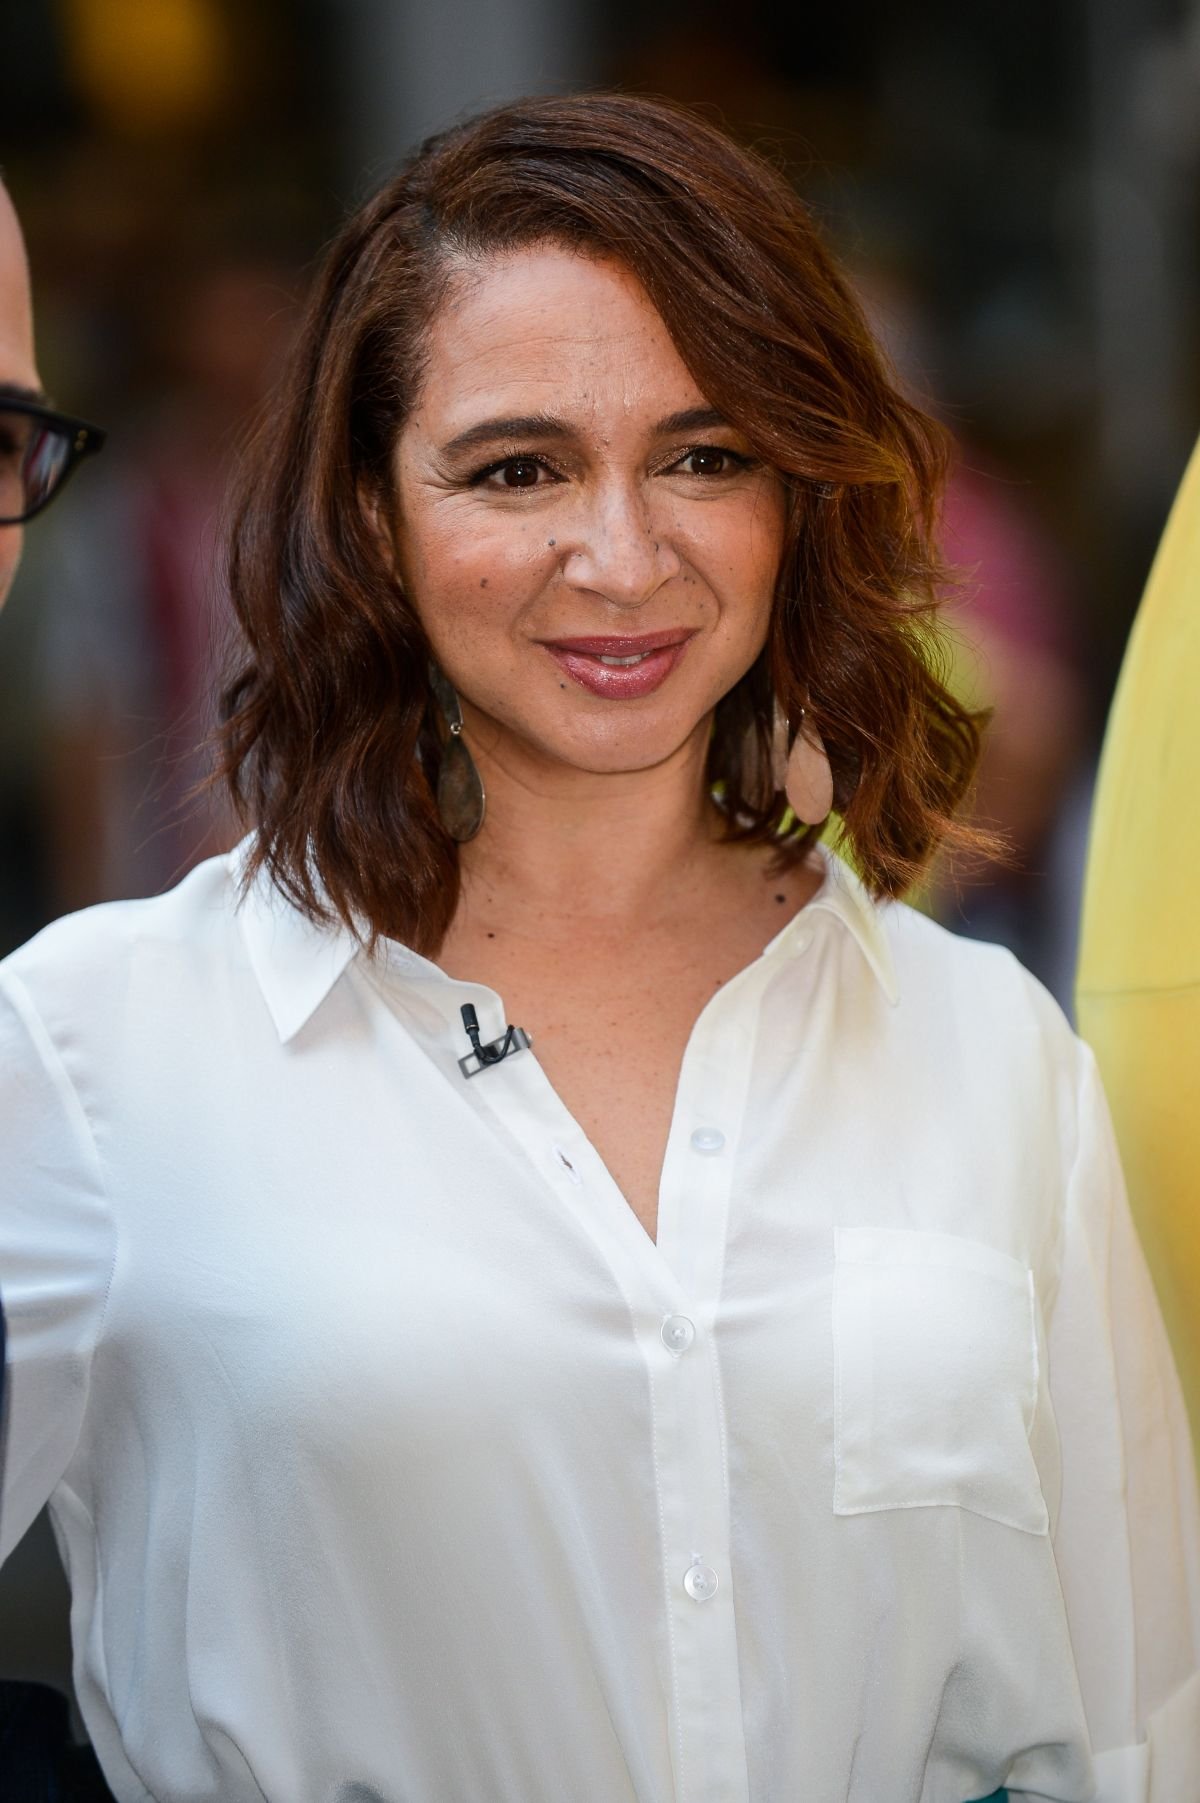 MAYA RUDOLPH at Good Morning America in New York 07/17/2017